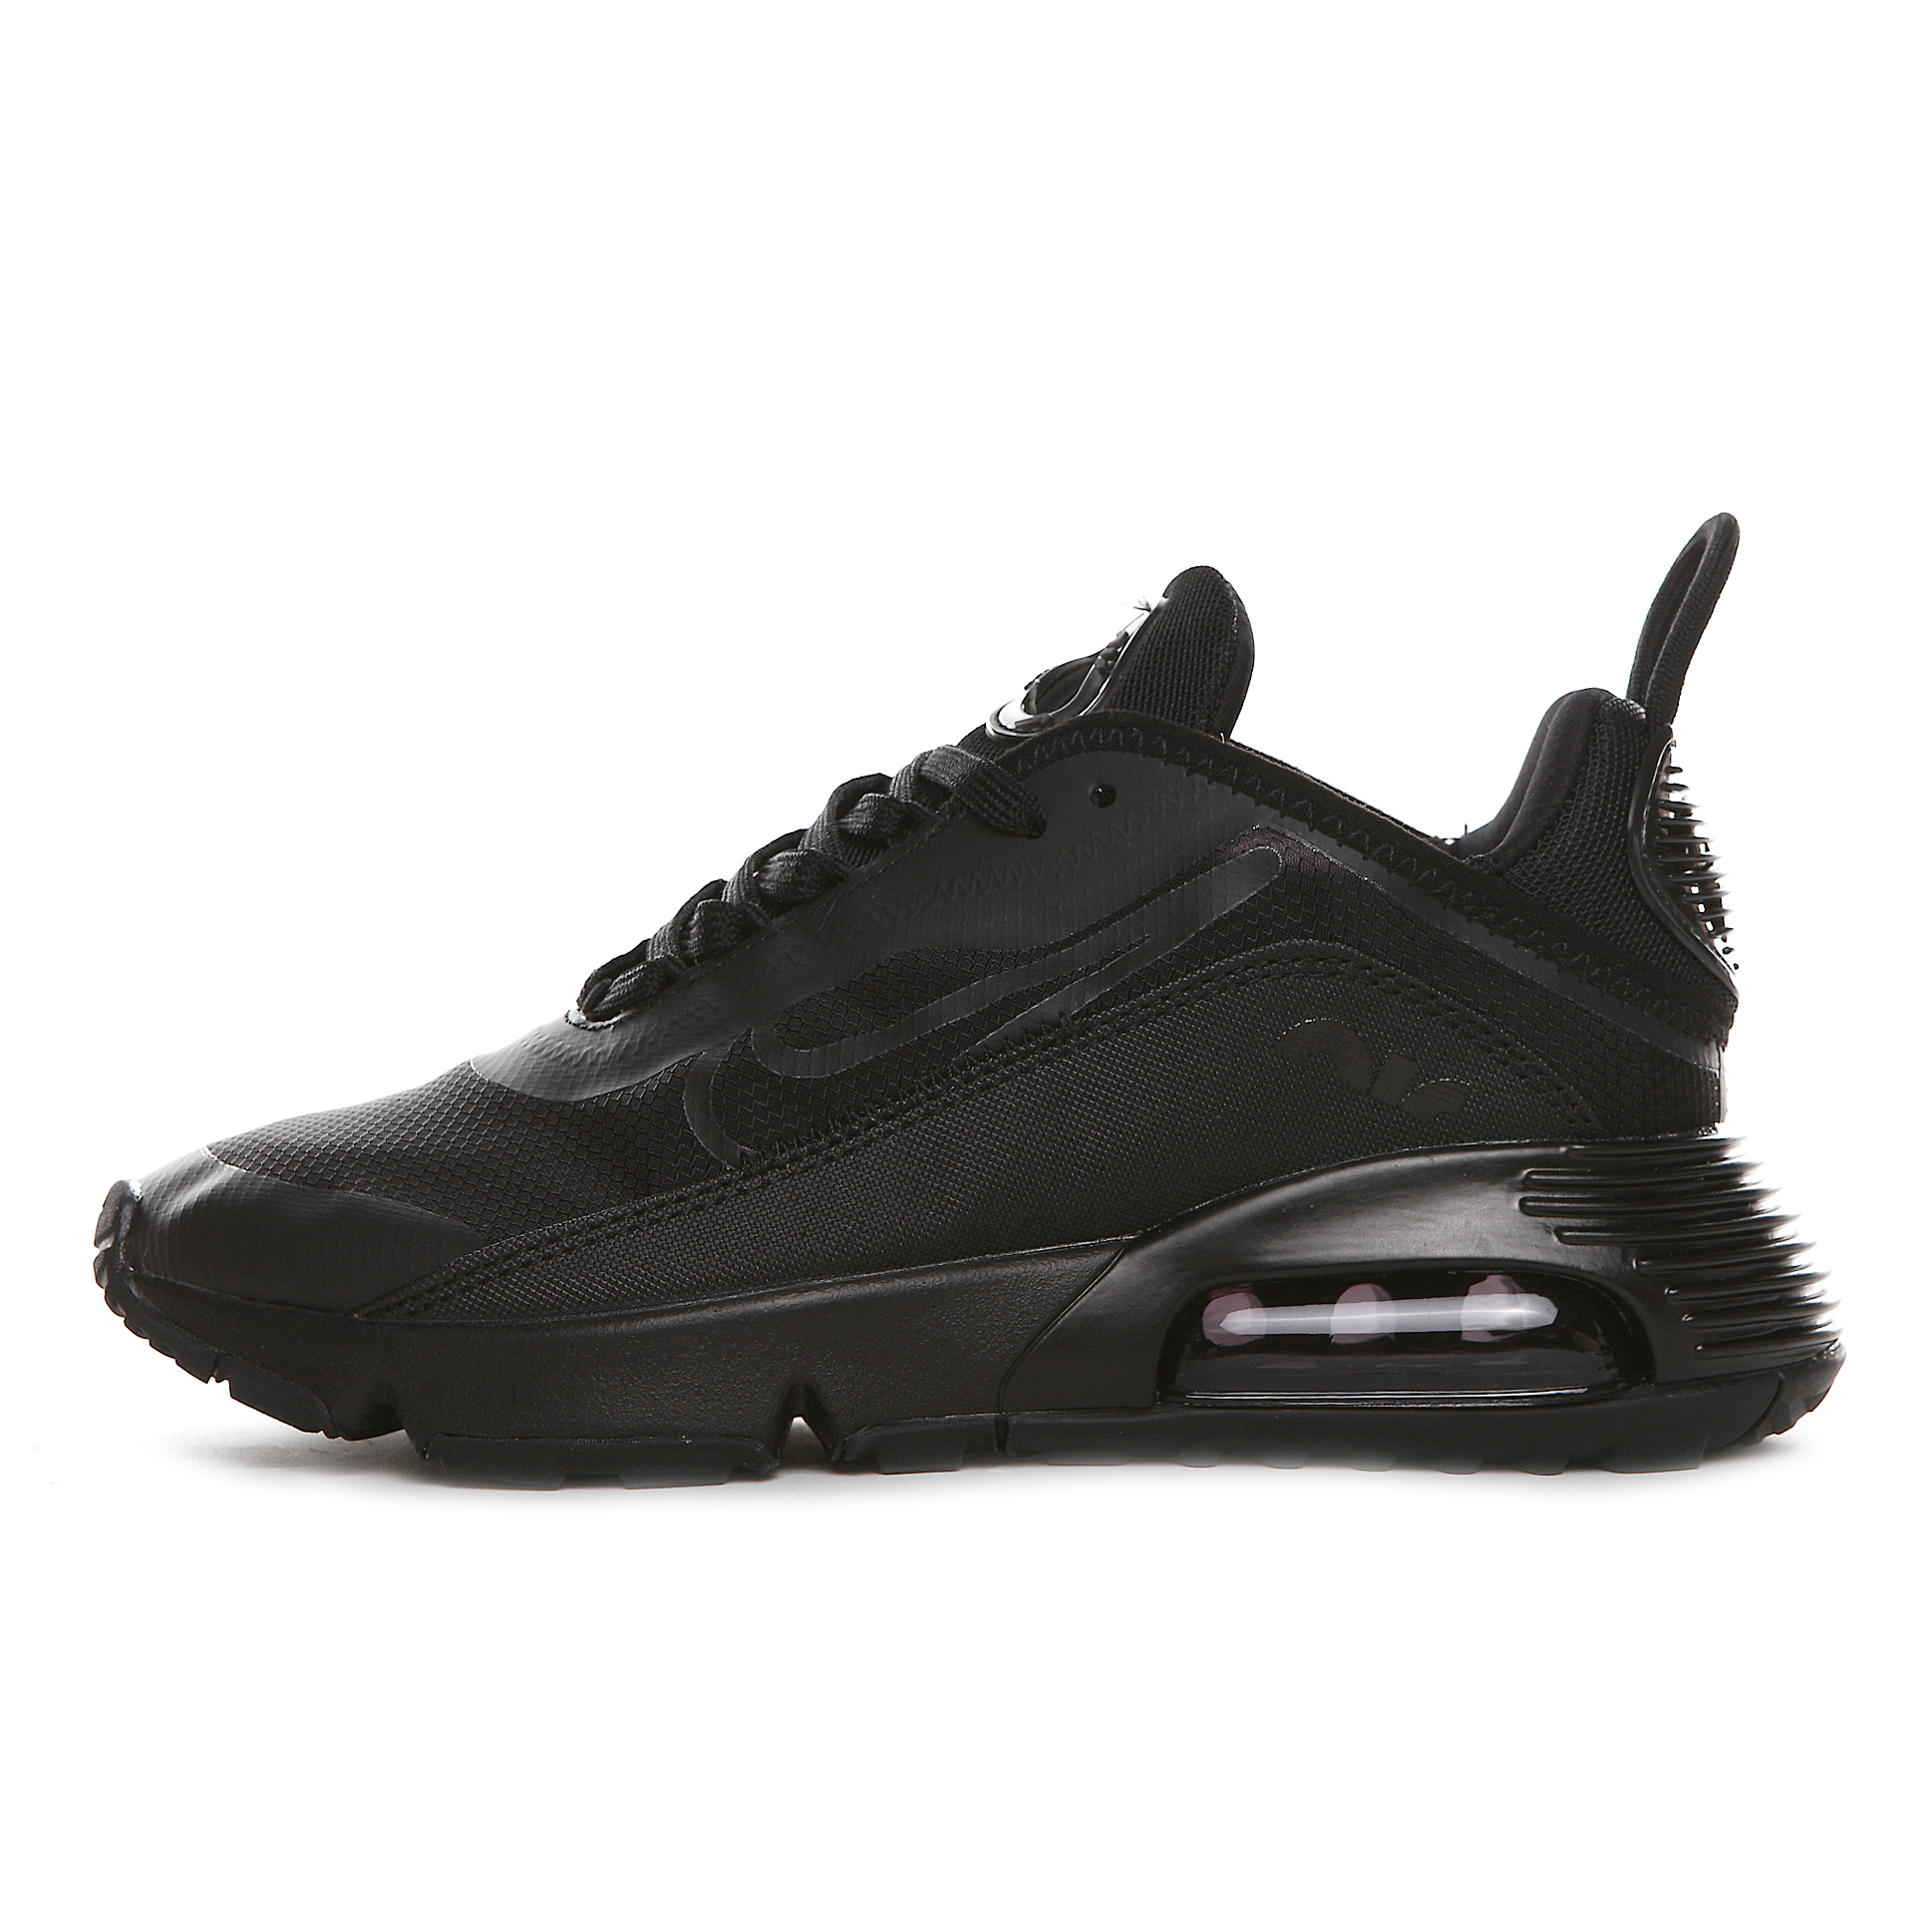 Men's Running weapon Air Max 90 Shoes 061